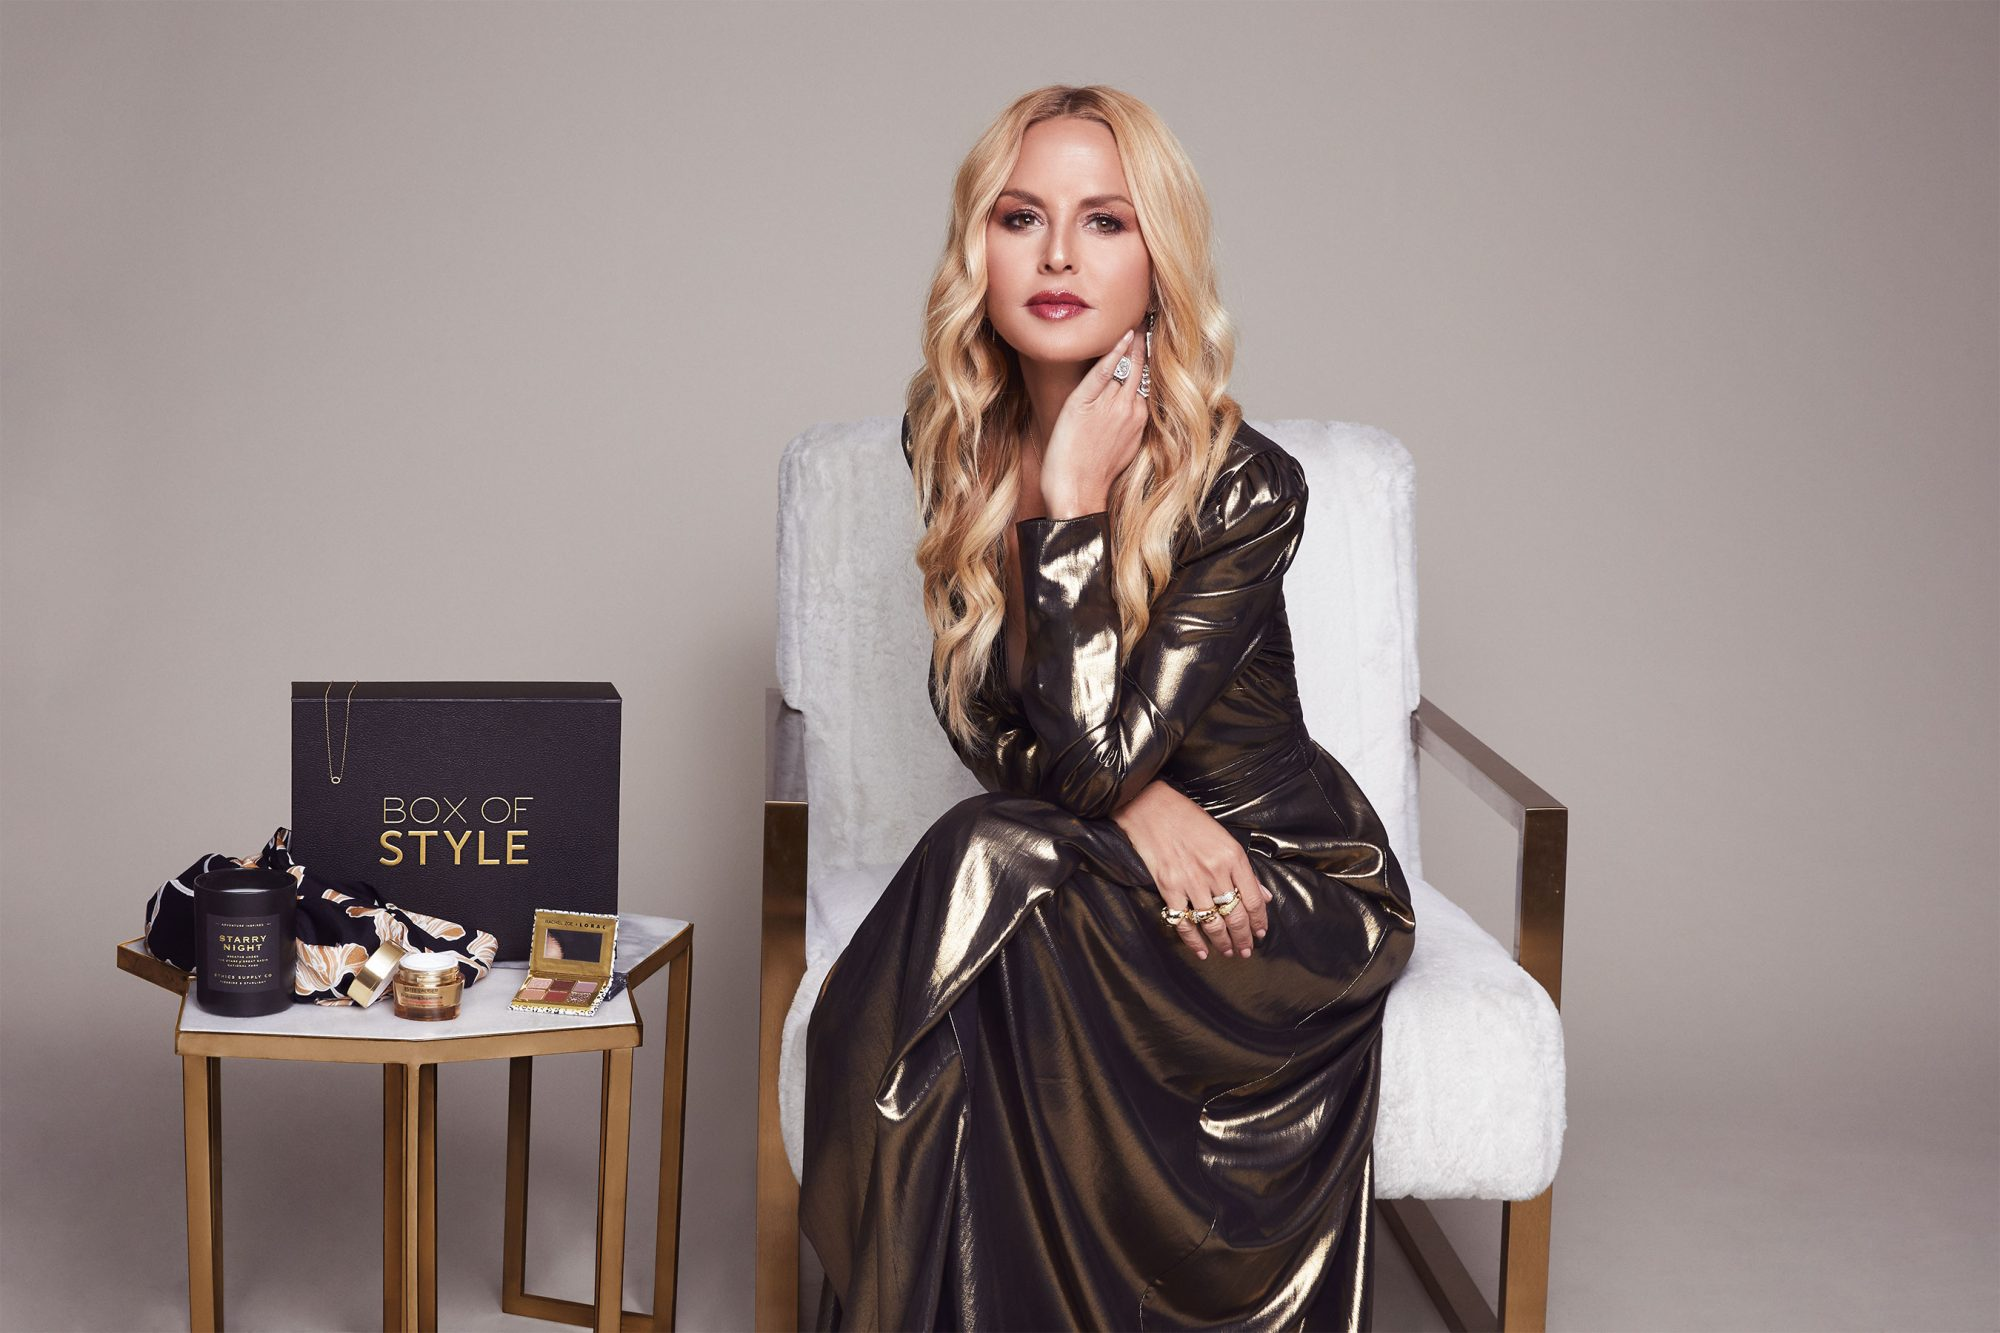 Rachel Zoe's winter Box of Style